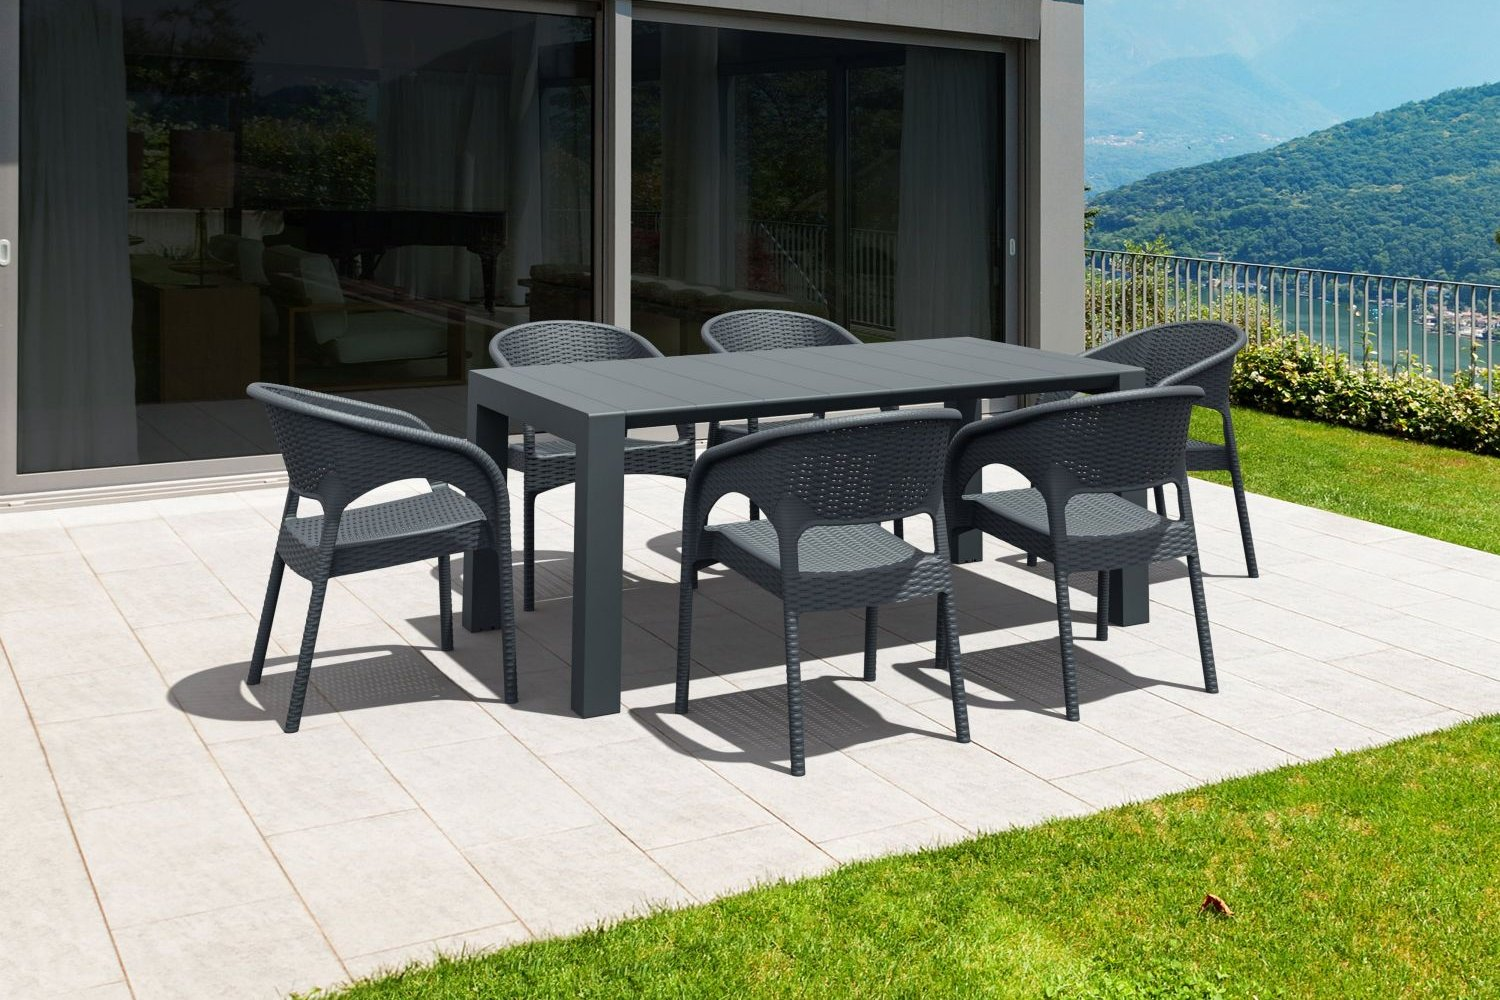 Panama Extendable Patio Dining Set 7 piece White ISP8082S-WH - 2